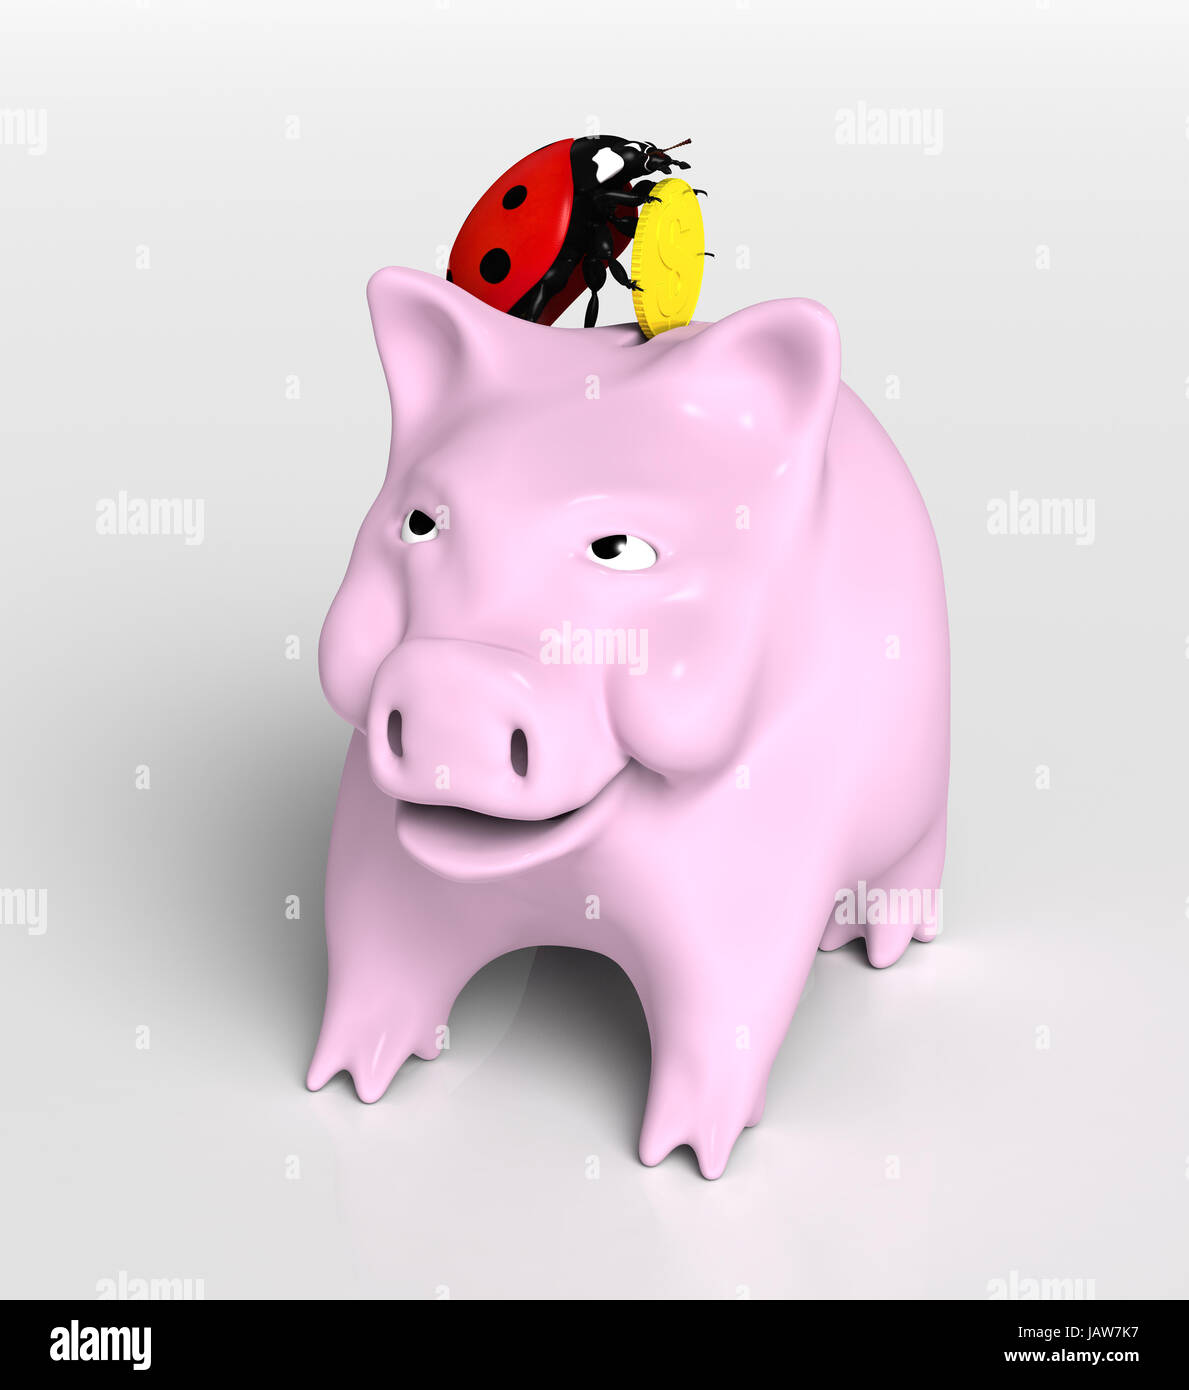 view of a ladybug on top of a piggy bank that stands up and puts a  - stock photo  view of a ladybug on top of a piggy bank that stands up andputs a golden coin into its slot on a neutral background